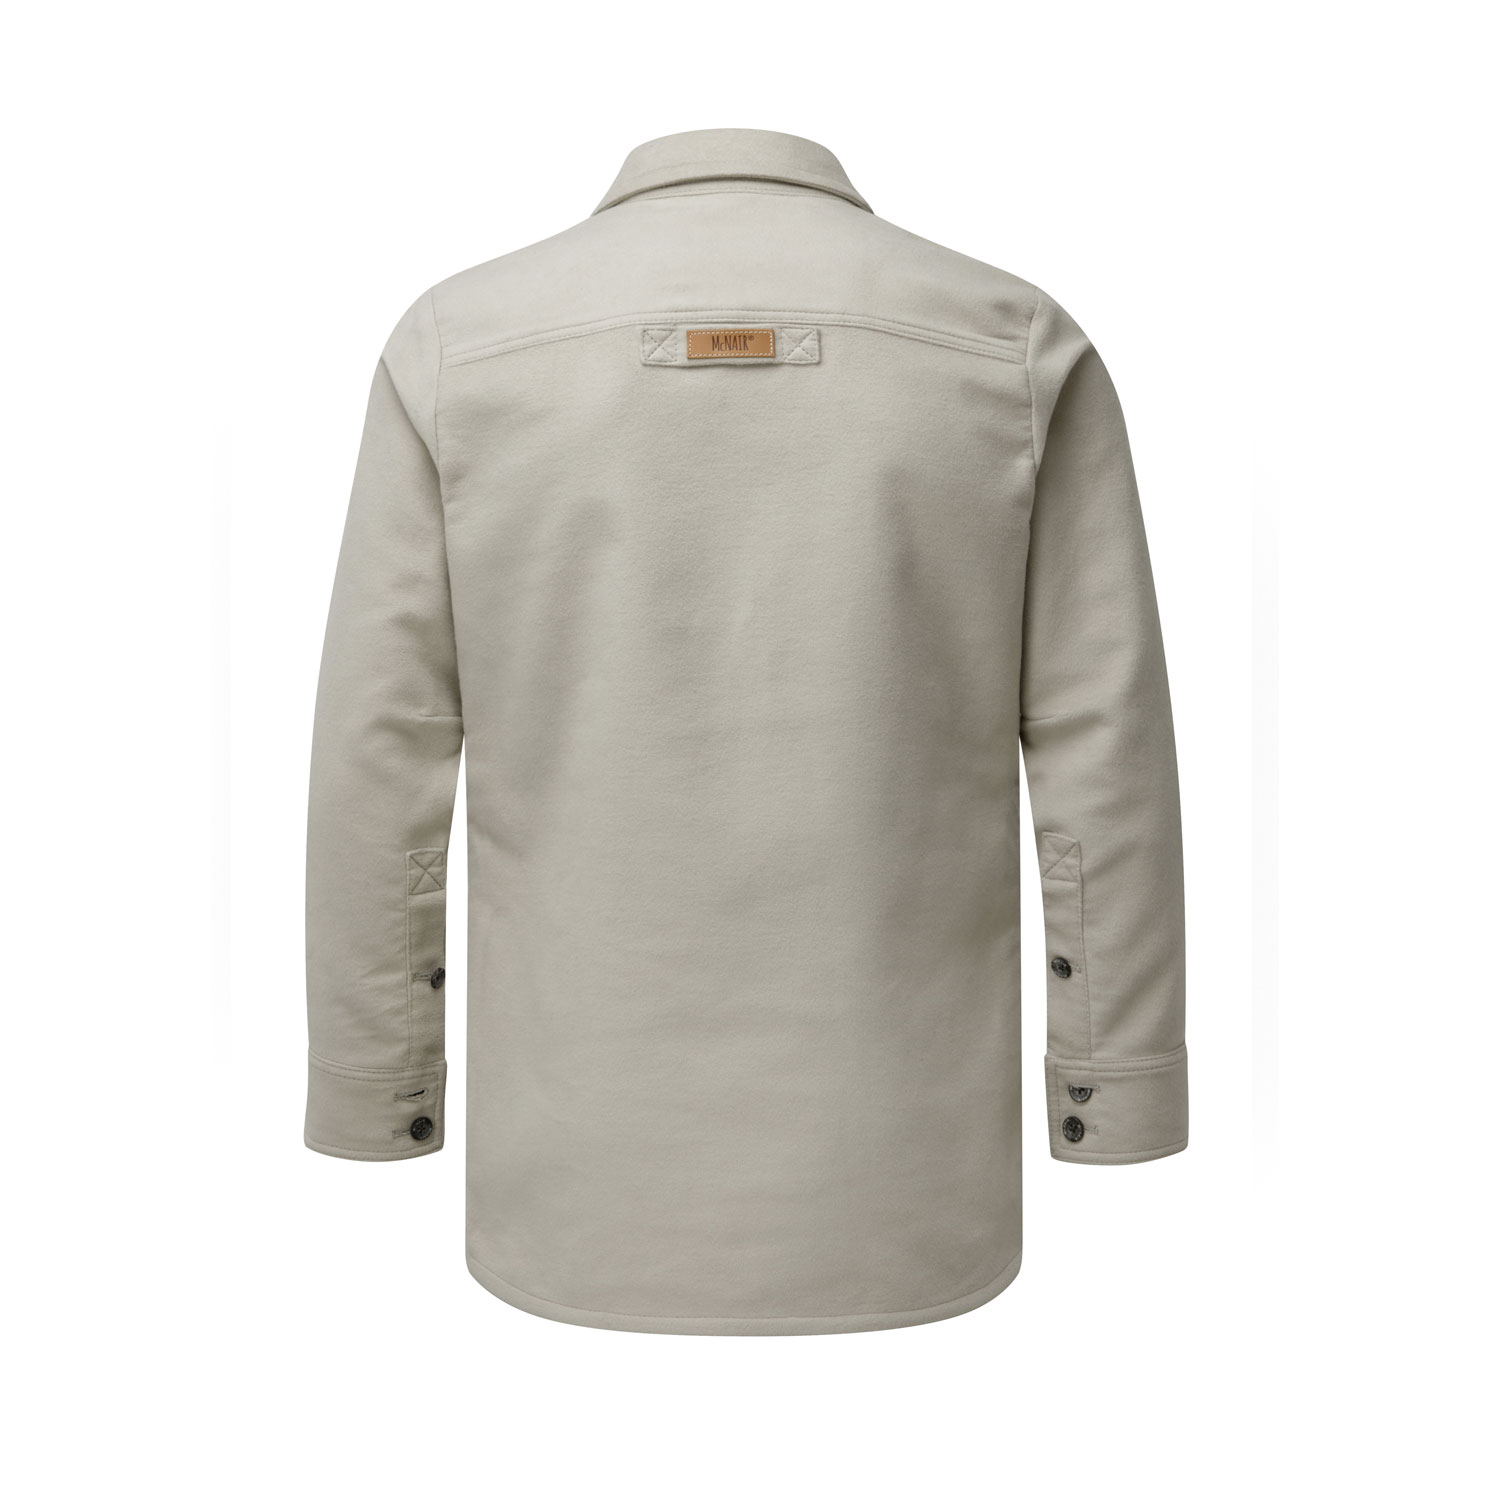 McNair Men's PlasmaDry Moleskin shirt in sisal